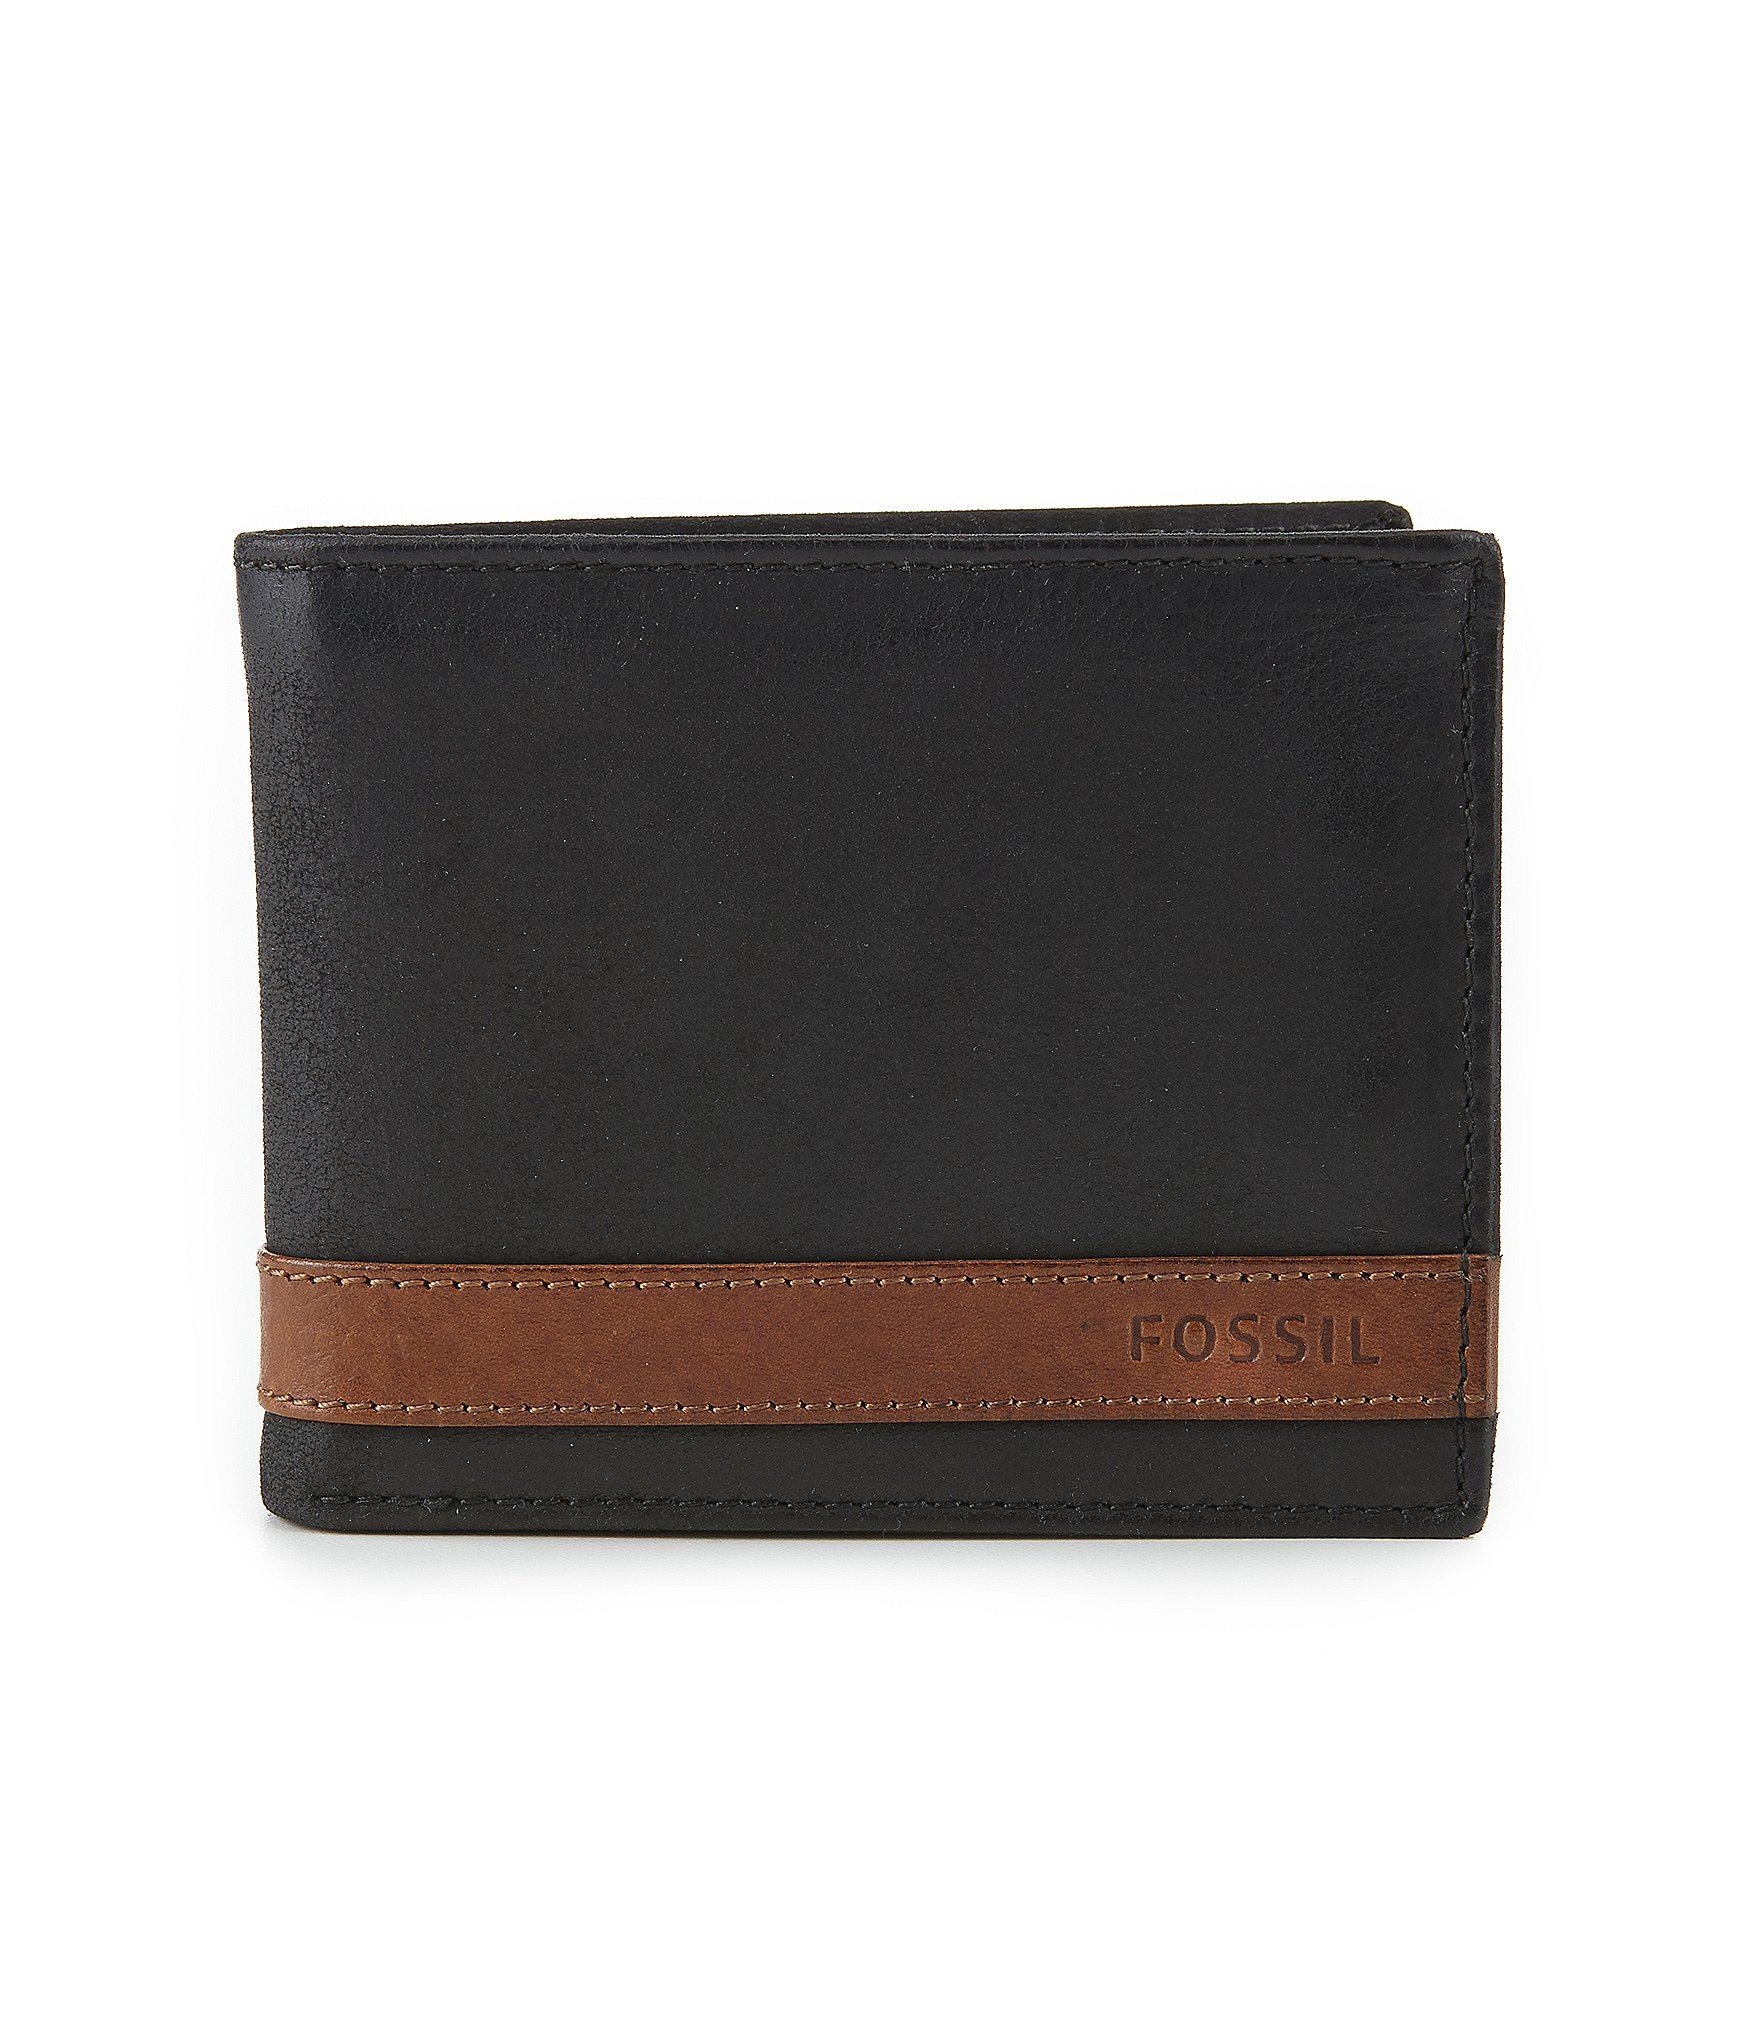 aa615763e792 Fossil Wallet Clearance